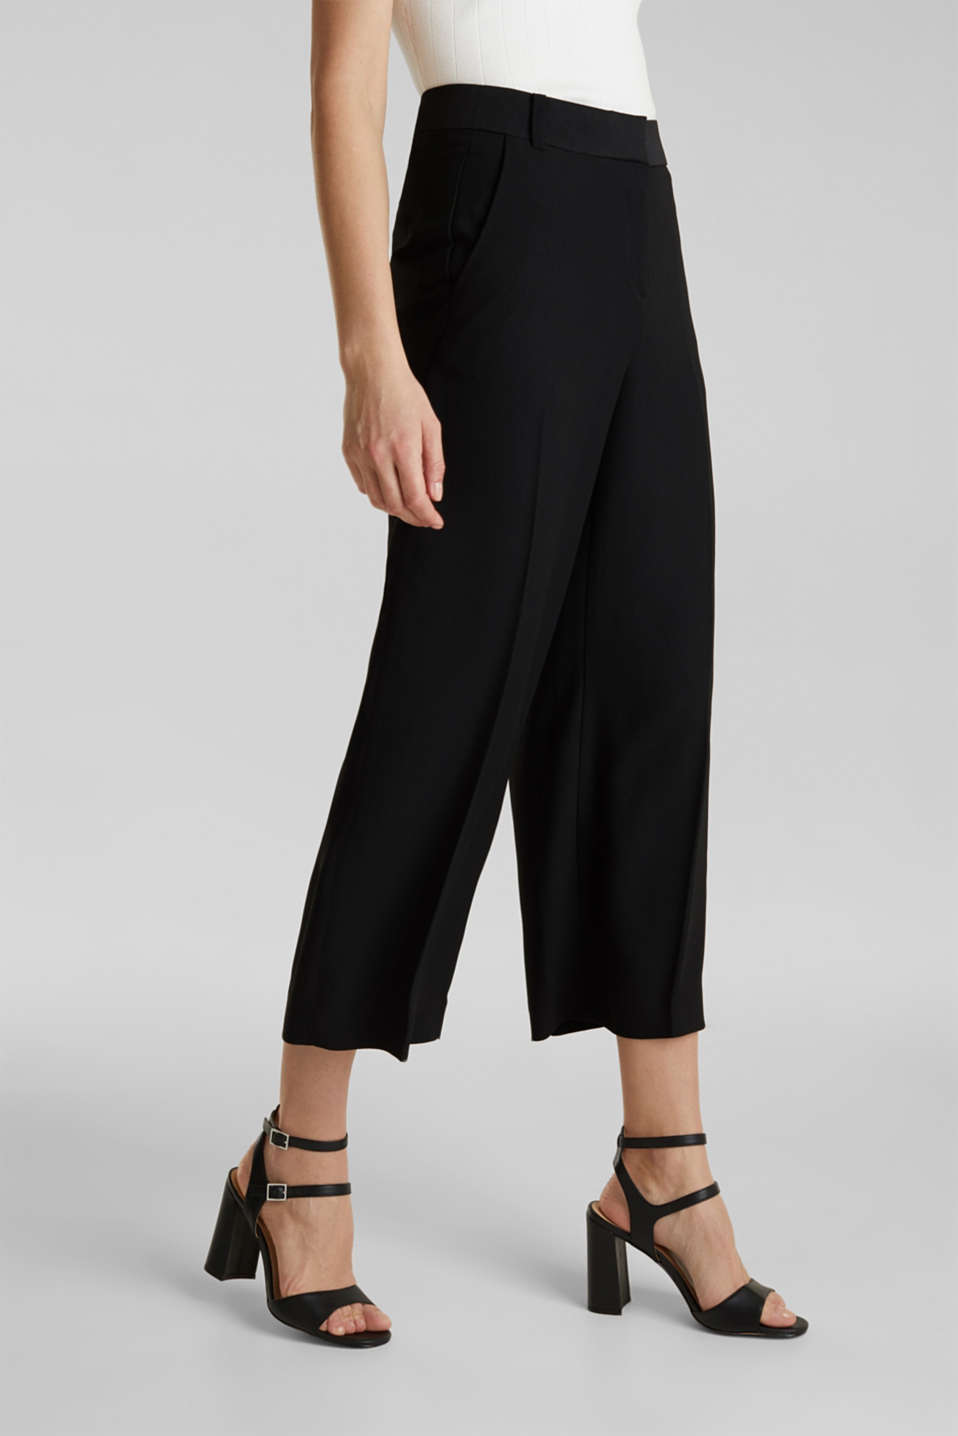 MATT SHINE mix + match culottes, BLACK, detail image number 0